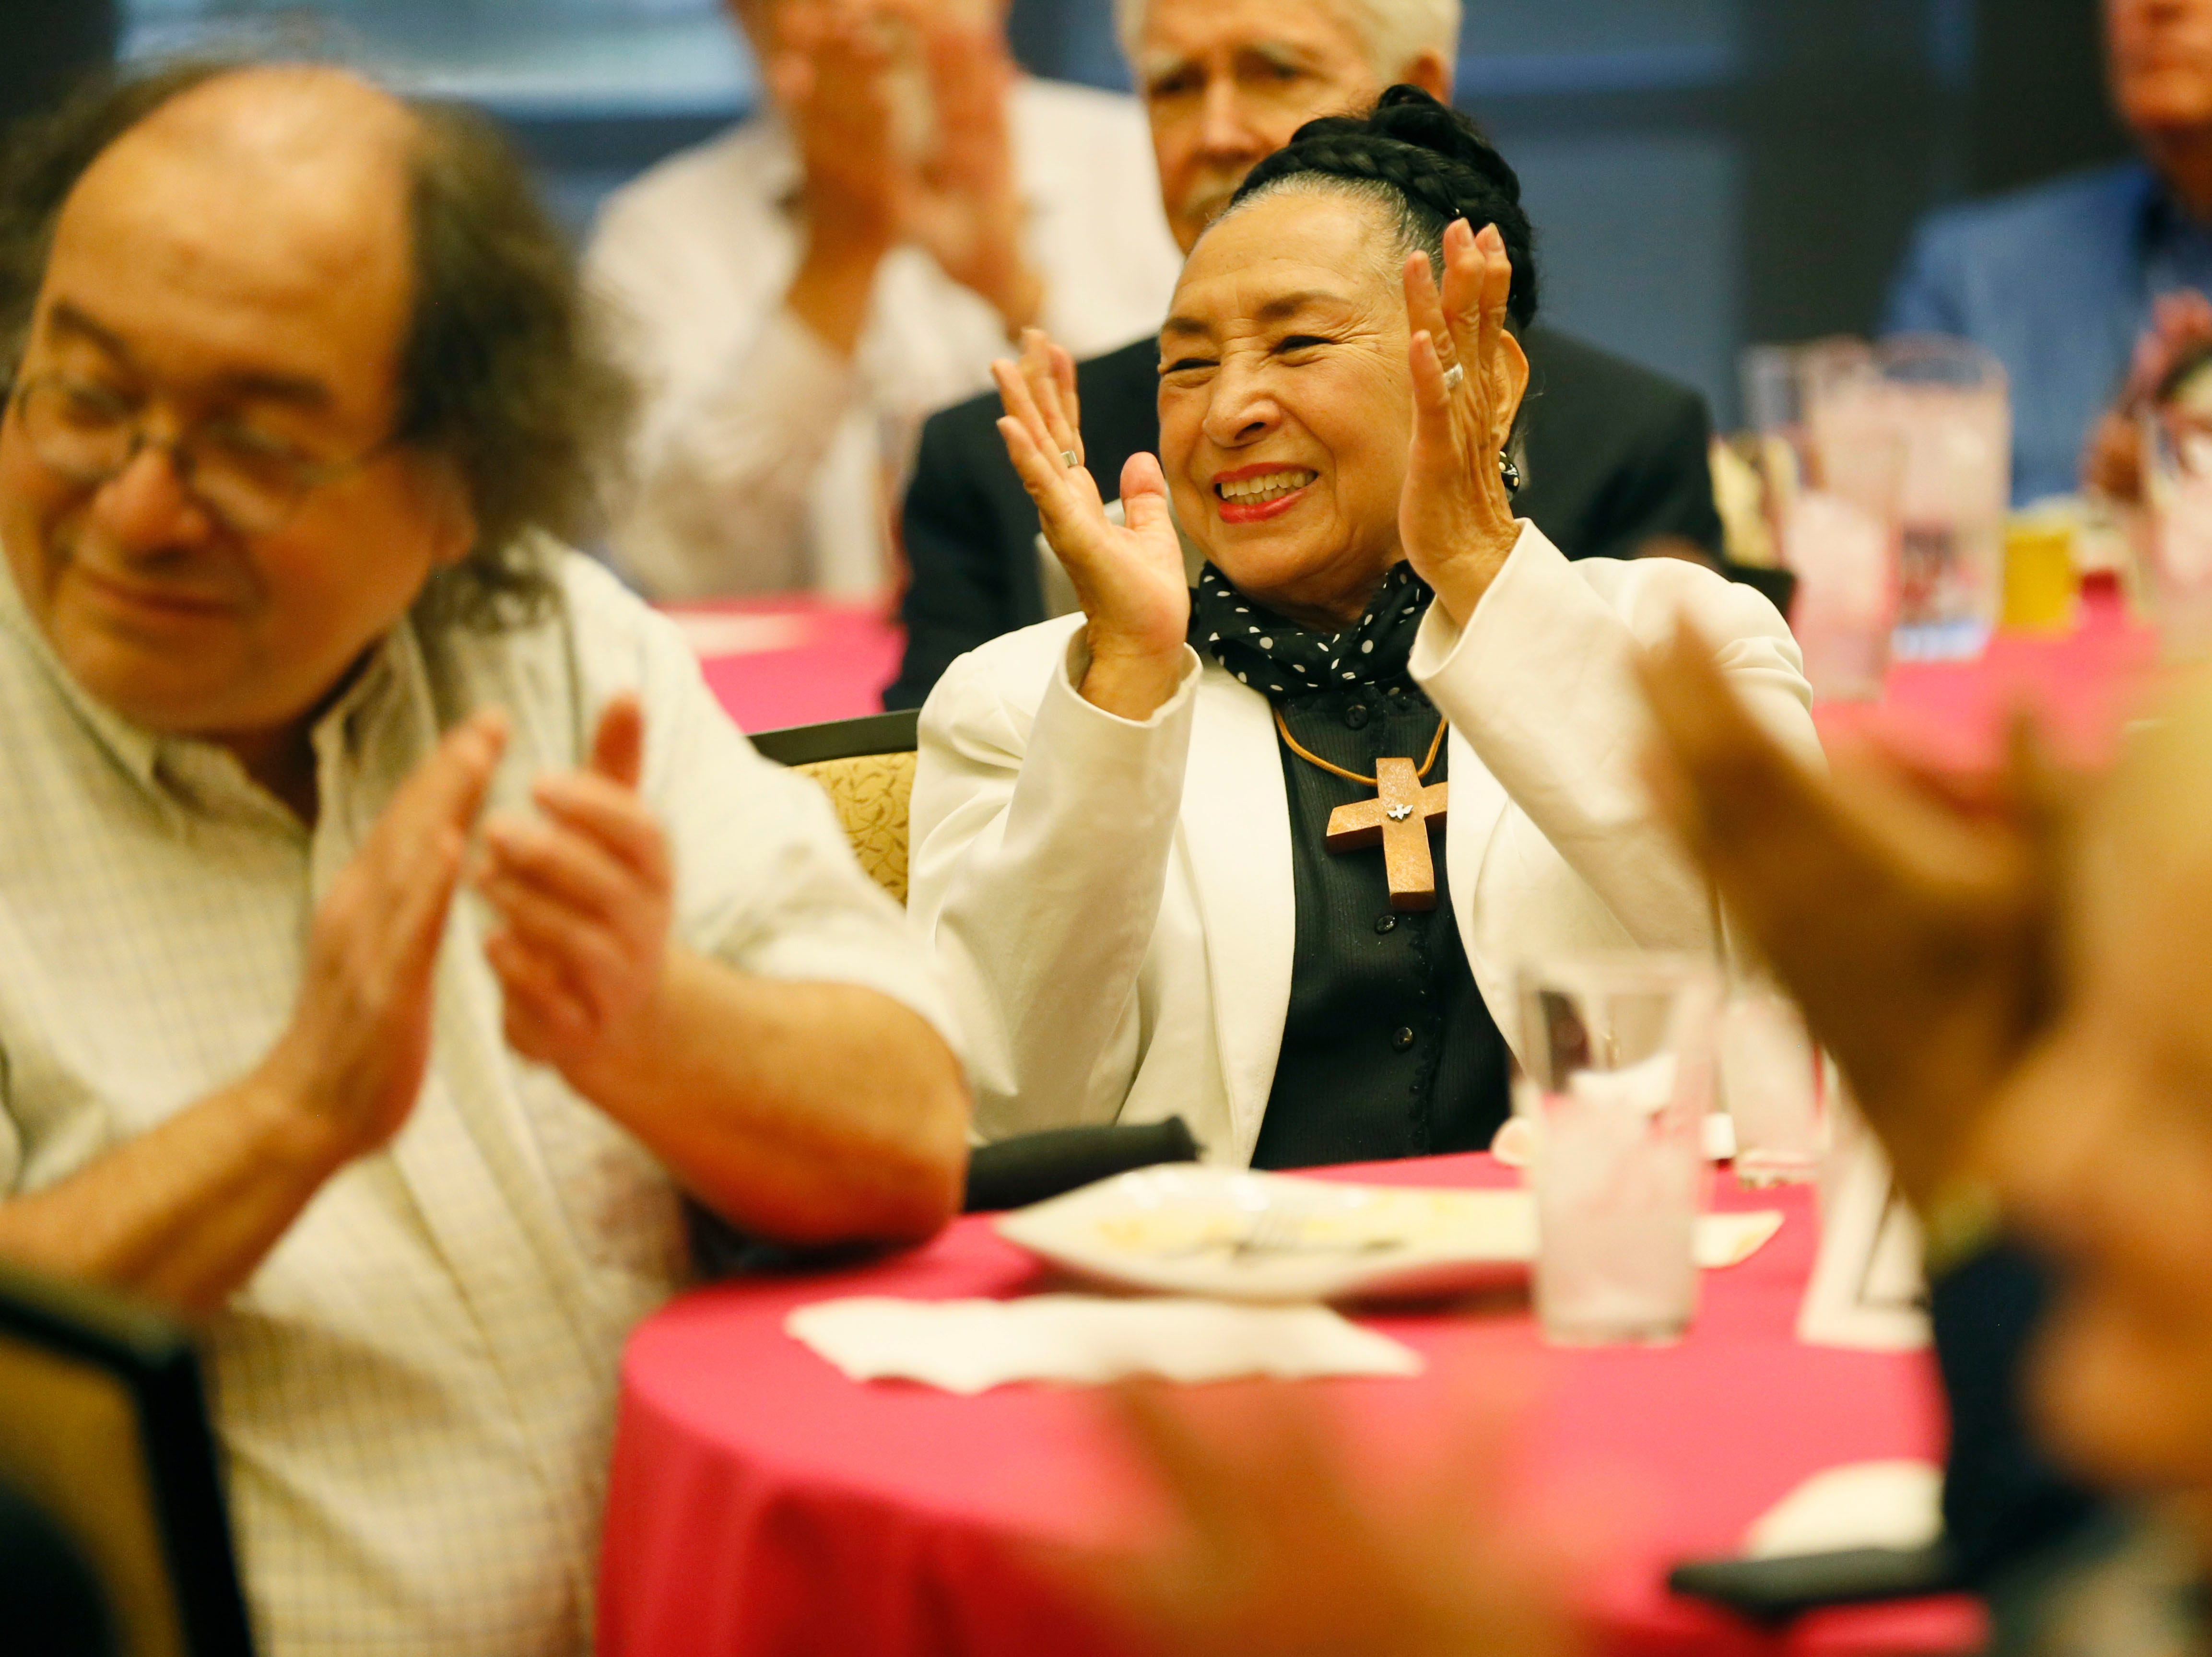 Rosa Guerrero applauds for the folklorico performance during the Rotary Club of El Paso Distinguished Service Award Thursday, May 9, at the El Paso Community Foundation Room.